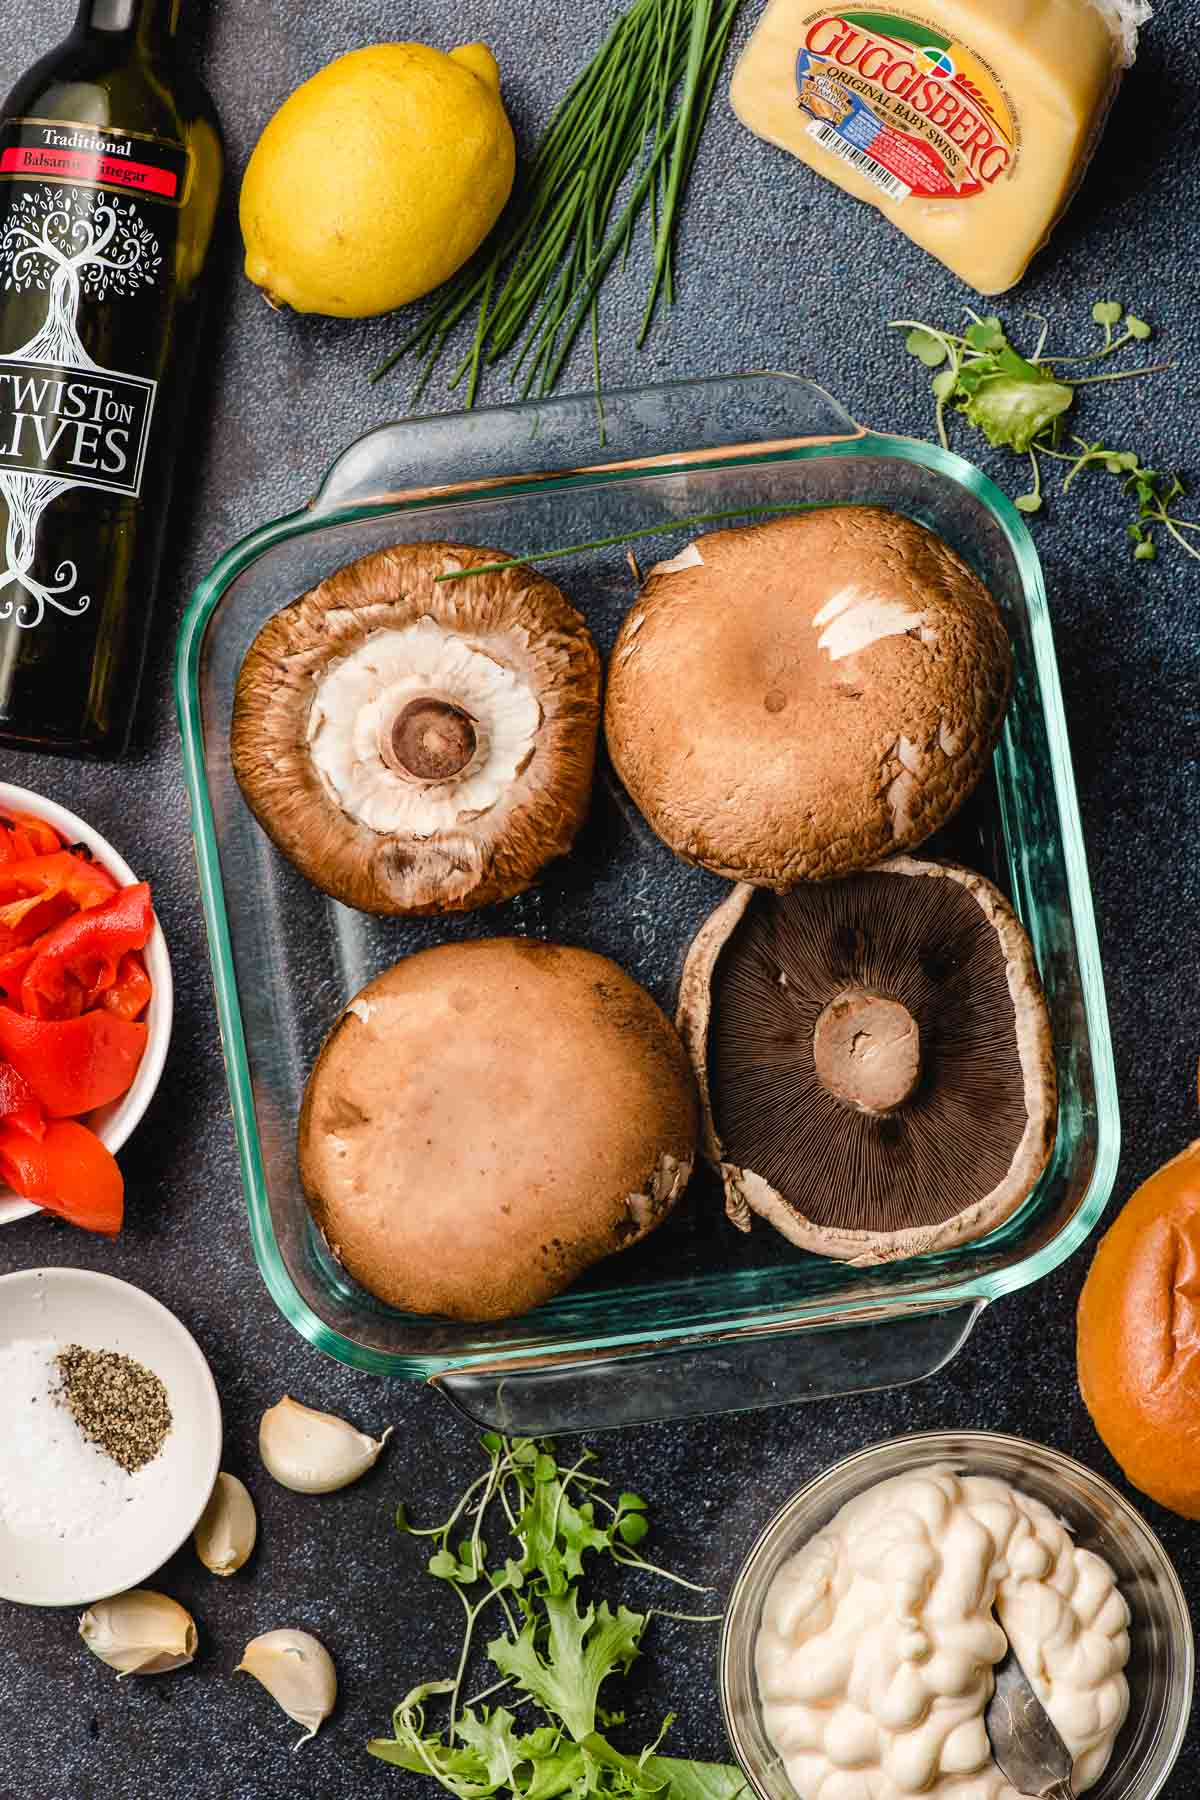 Portobello mushrooms in a glass casserole dish surrounded by ingredients for a sandwich.